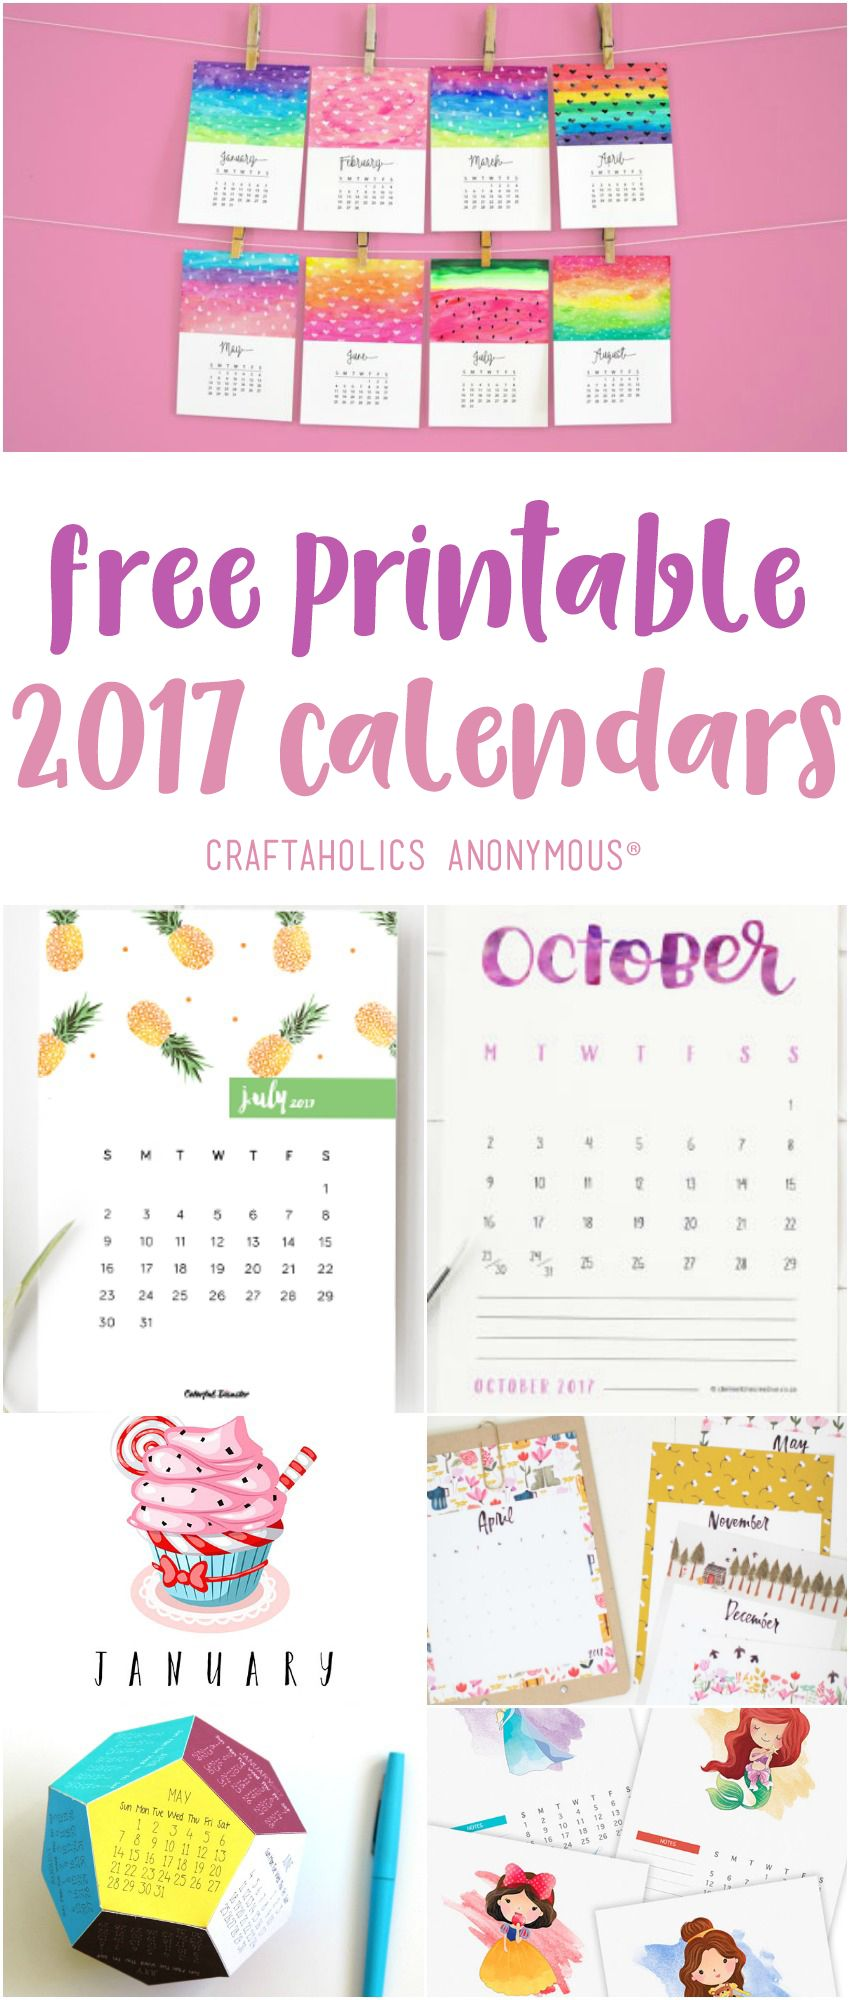 Printable free 2017 Calendar | Towels, Calendar and For sale